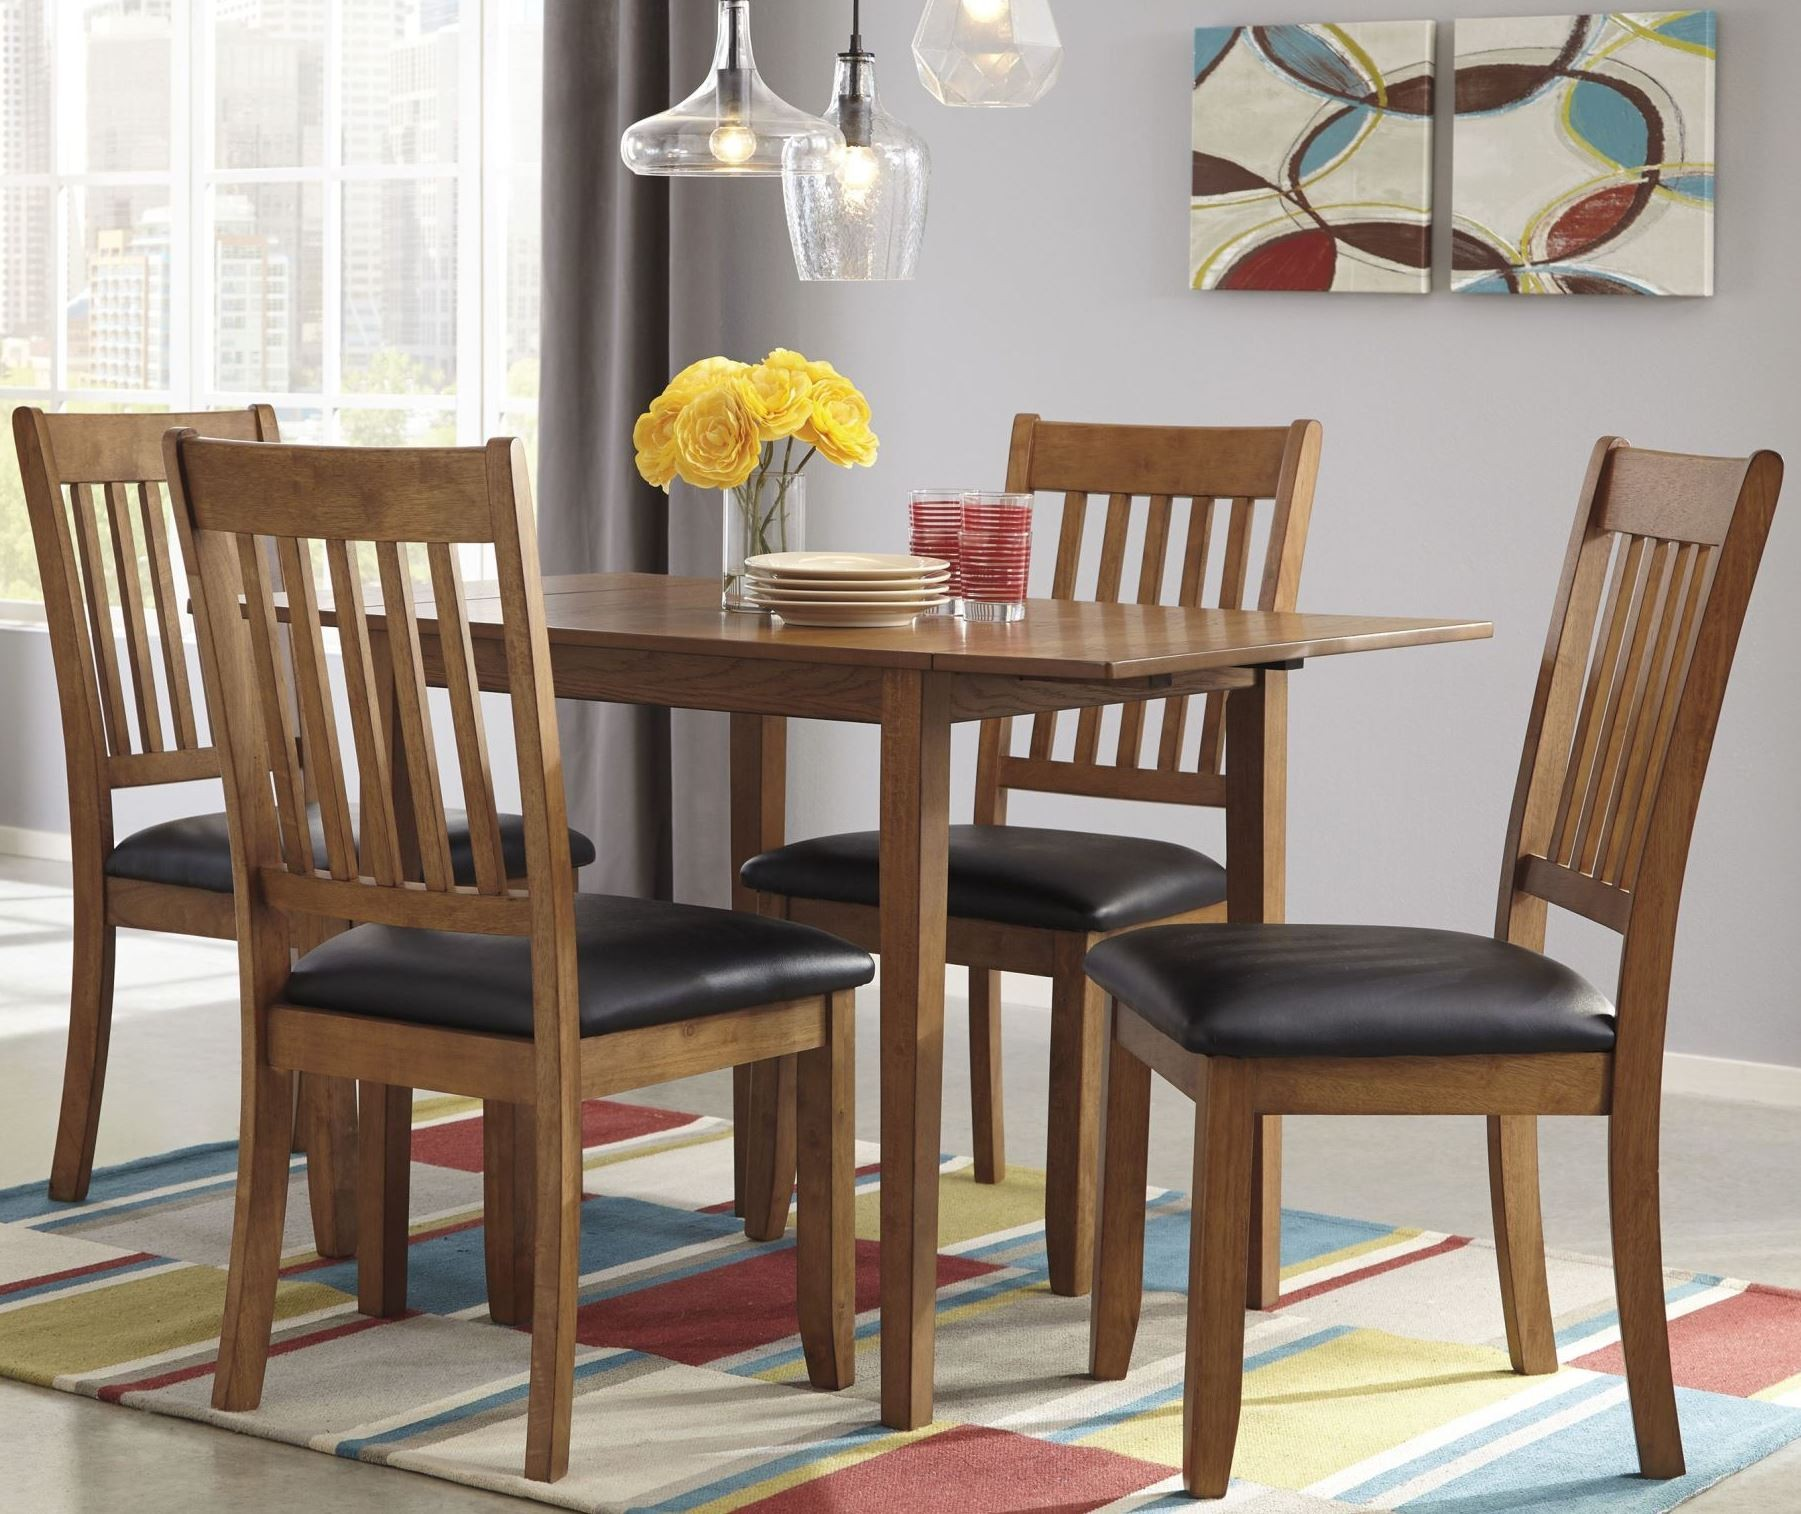 Dining Room Sets With Leaf: Joveen Light Brown Drop Leaf Dining Room Set From Ashley